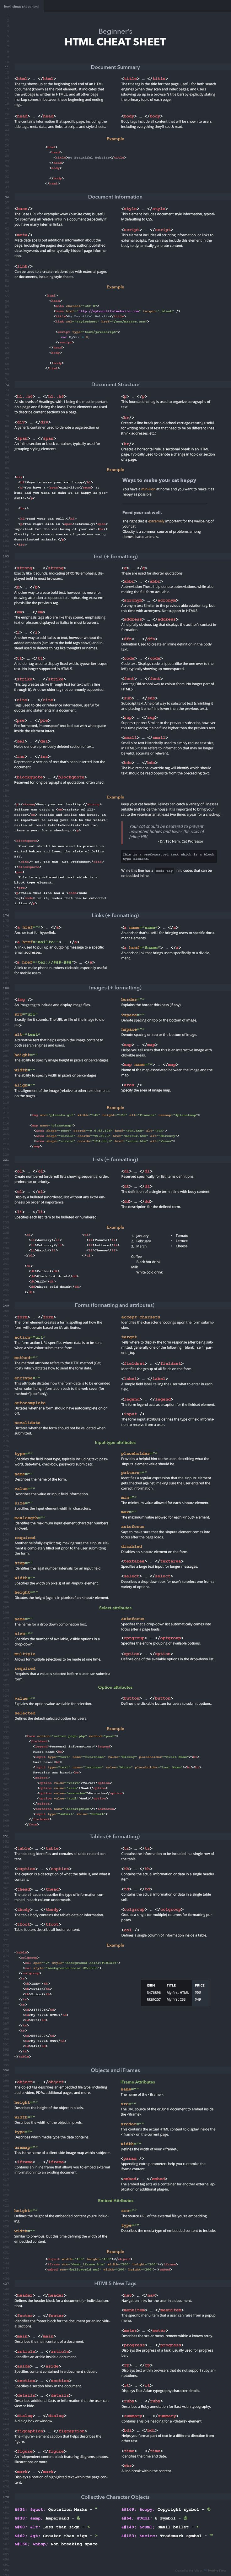 Infographic: HTML Cheat Sheet